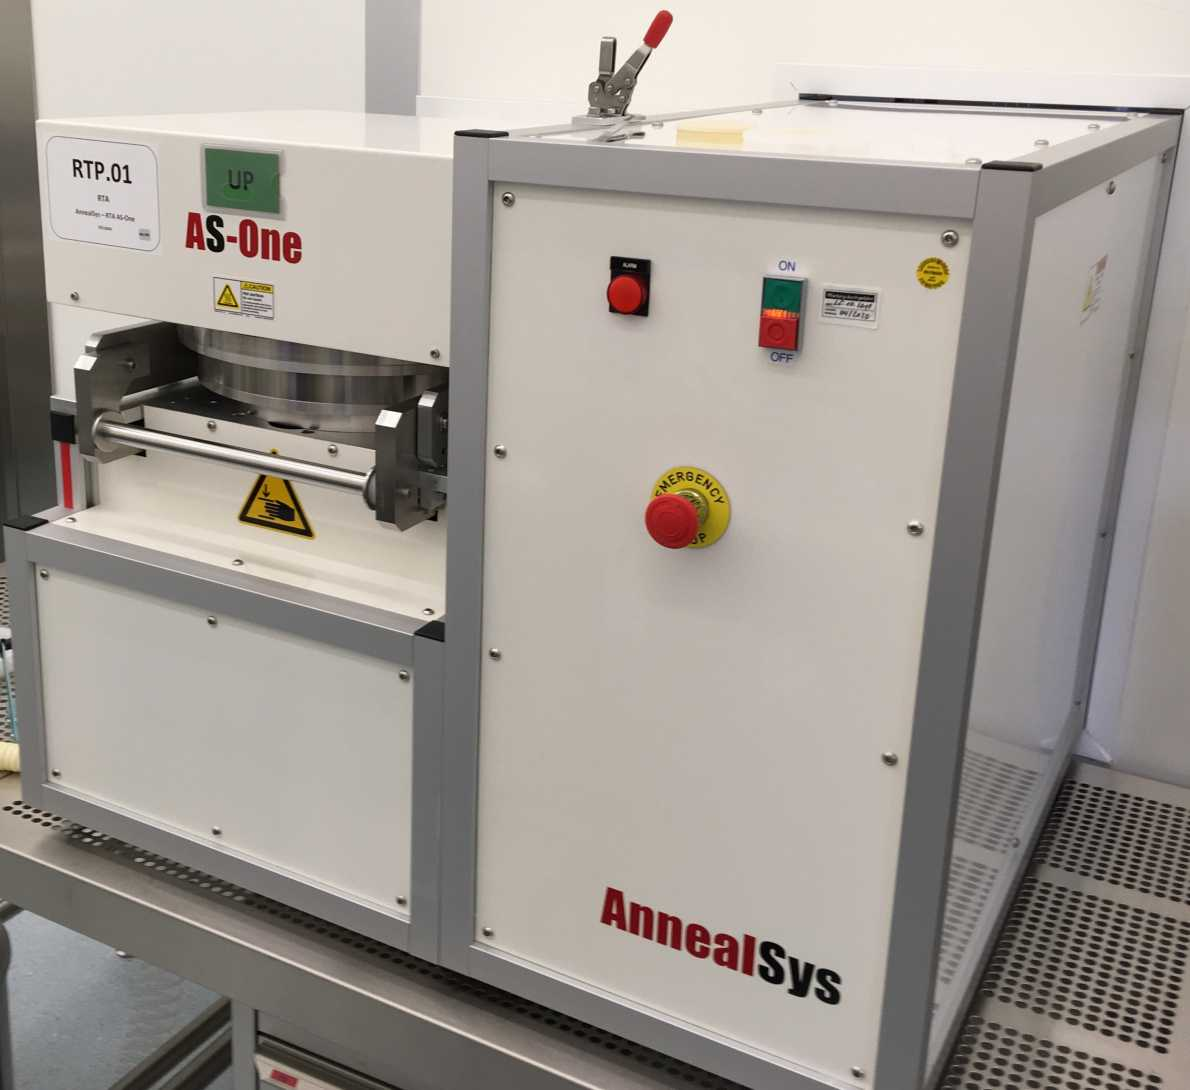 AS-One 150 (5115) (�annealsys.com 2021)